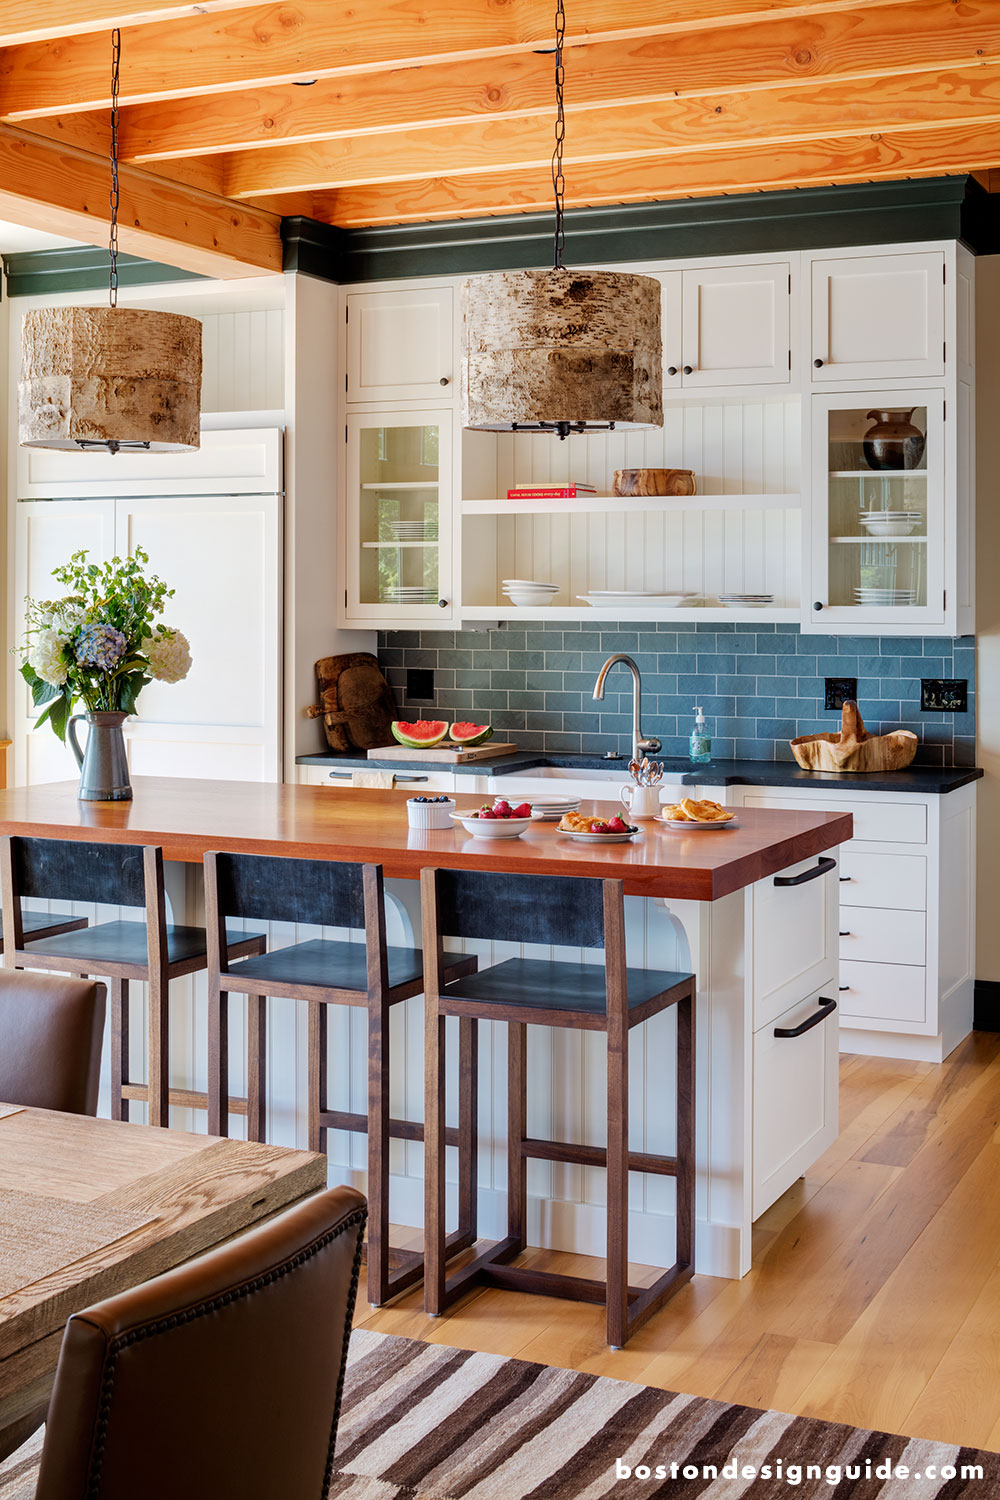 Residential Interior Project Has Modern Yet Vintage Take: Mollie Johnson Interiors